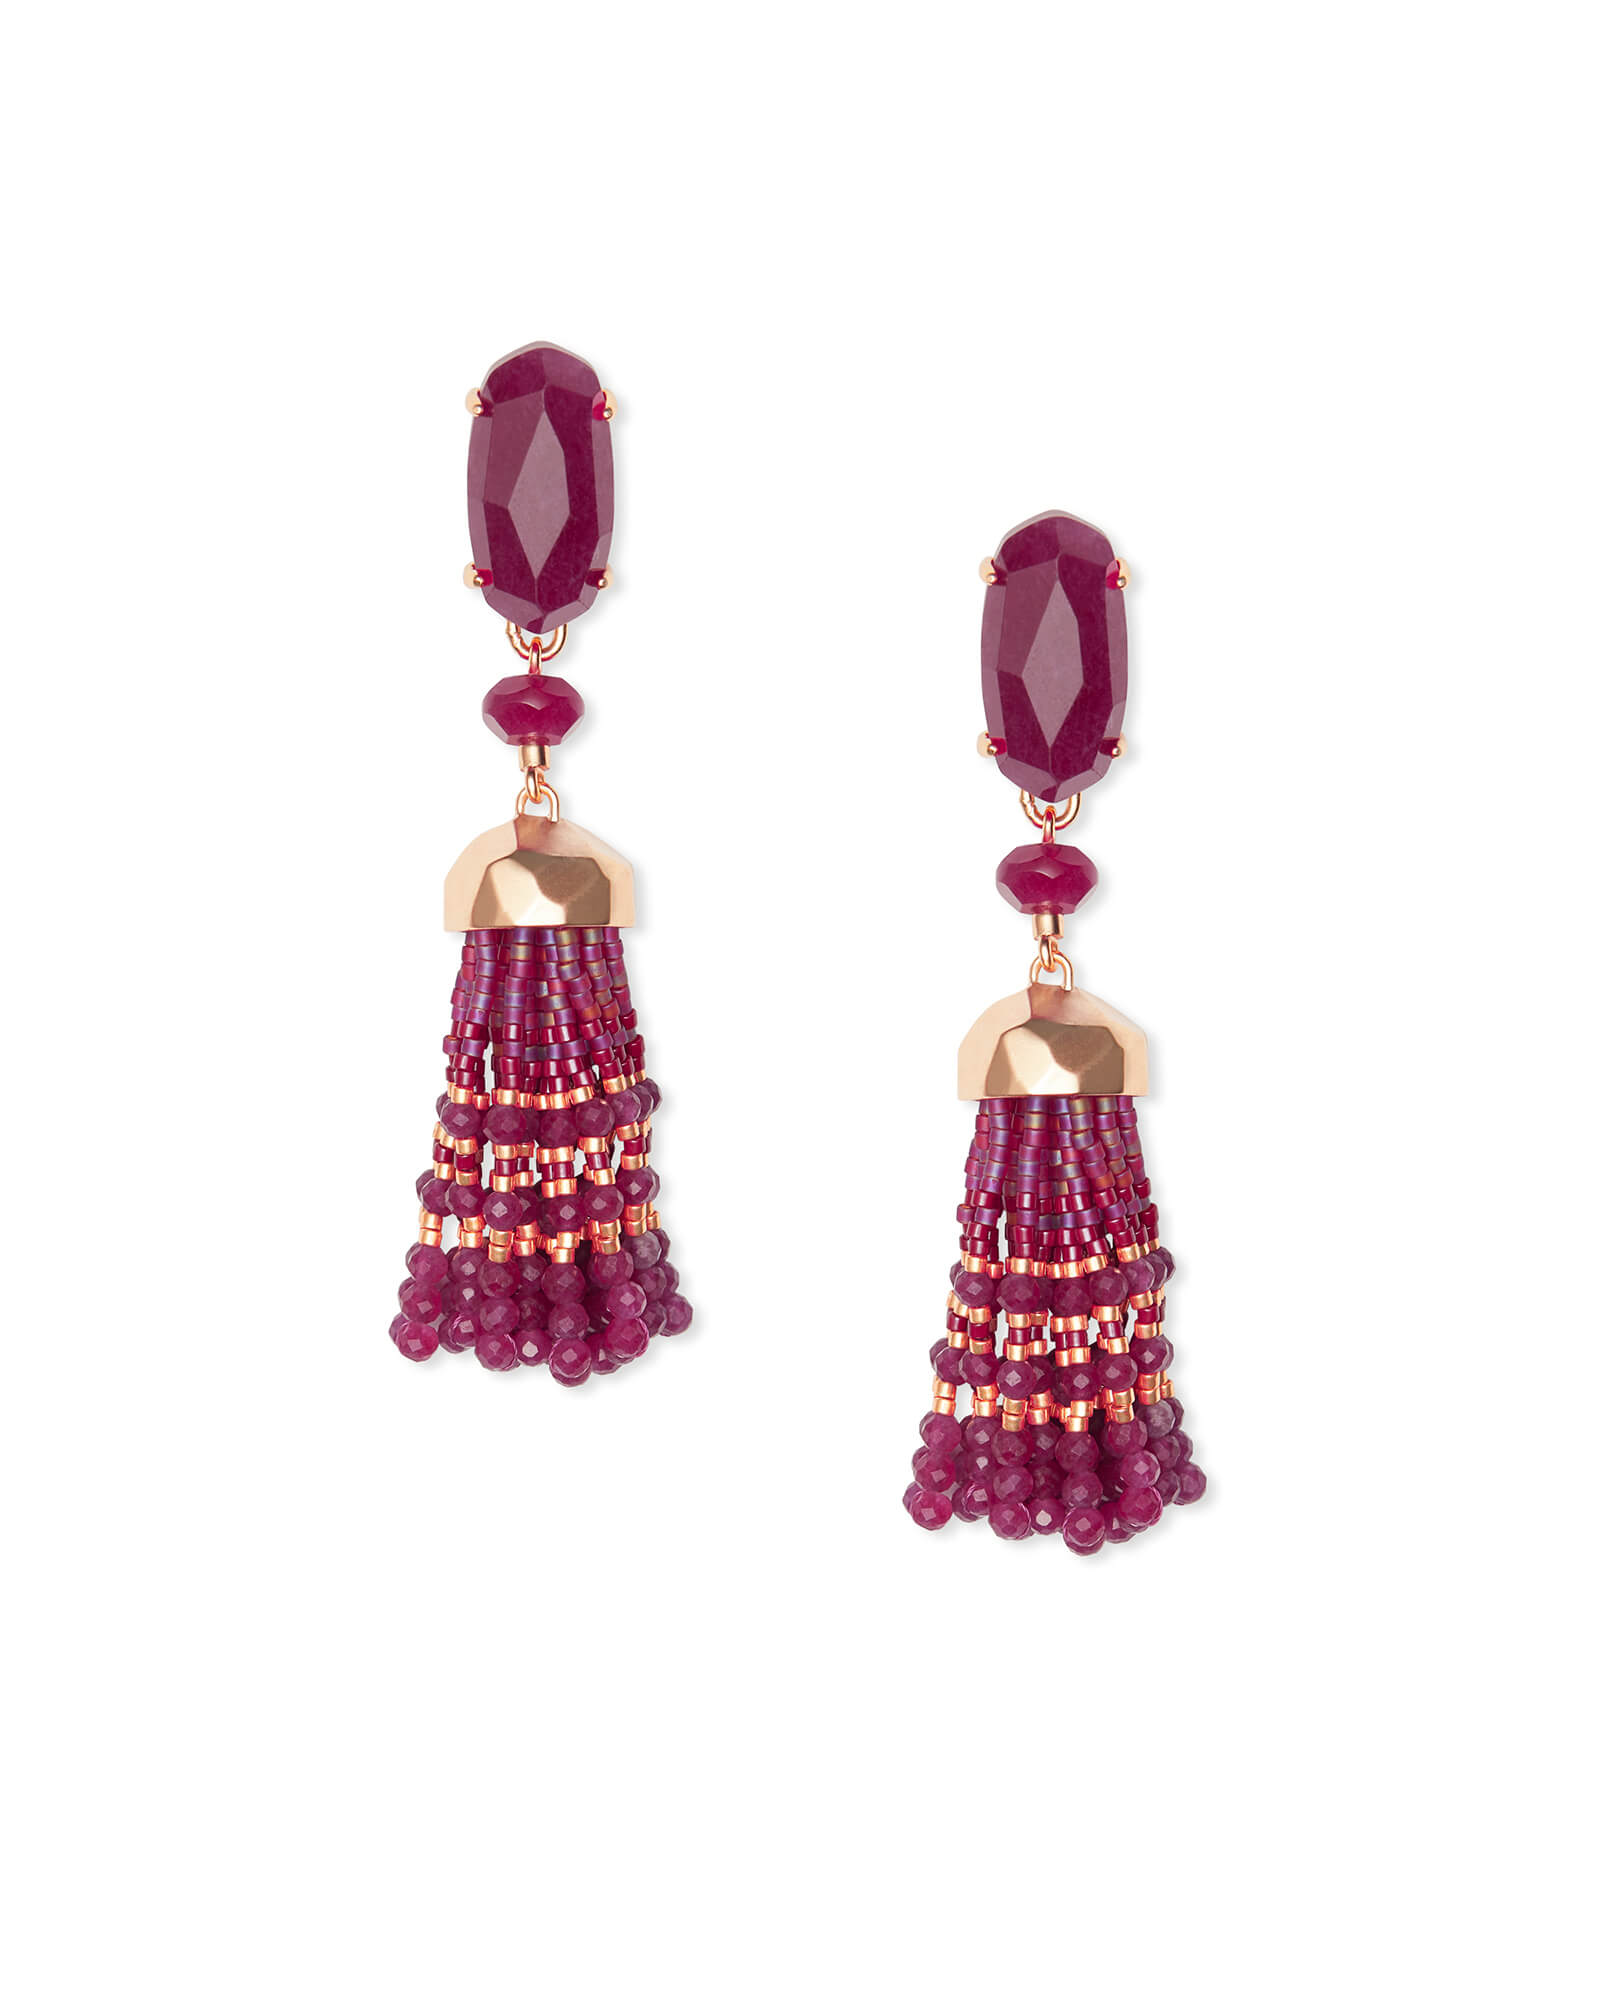 Dove Rose Gold Statement Earrings in Maroon Jade